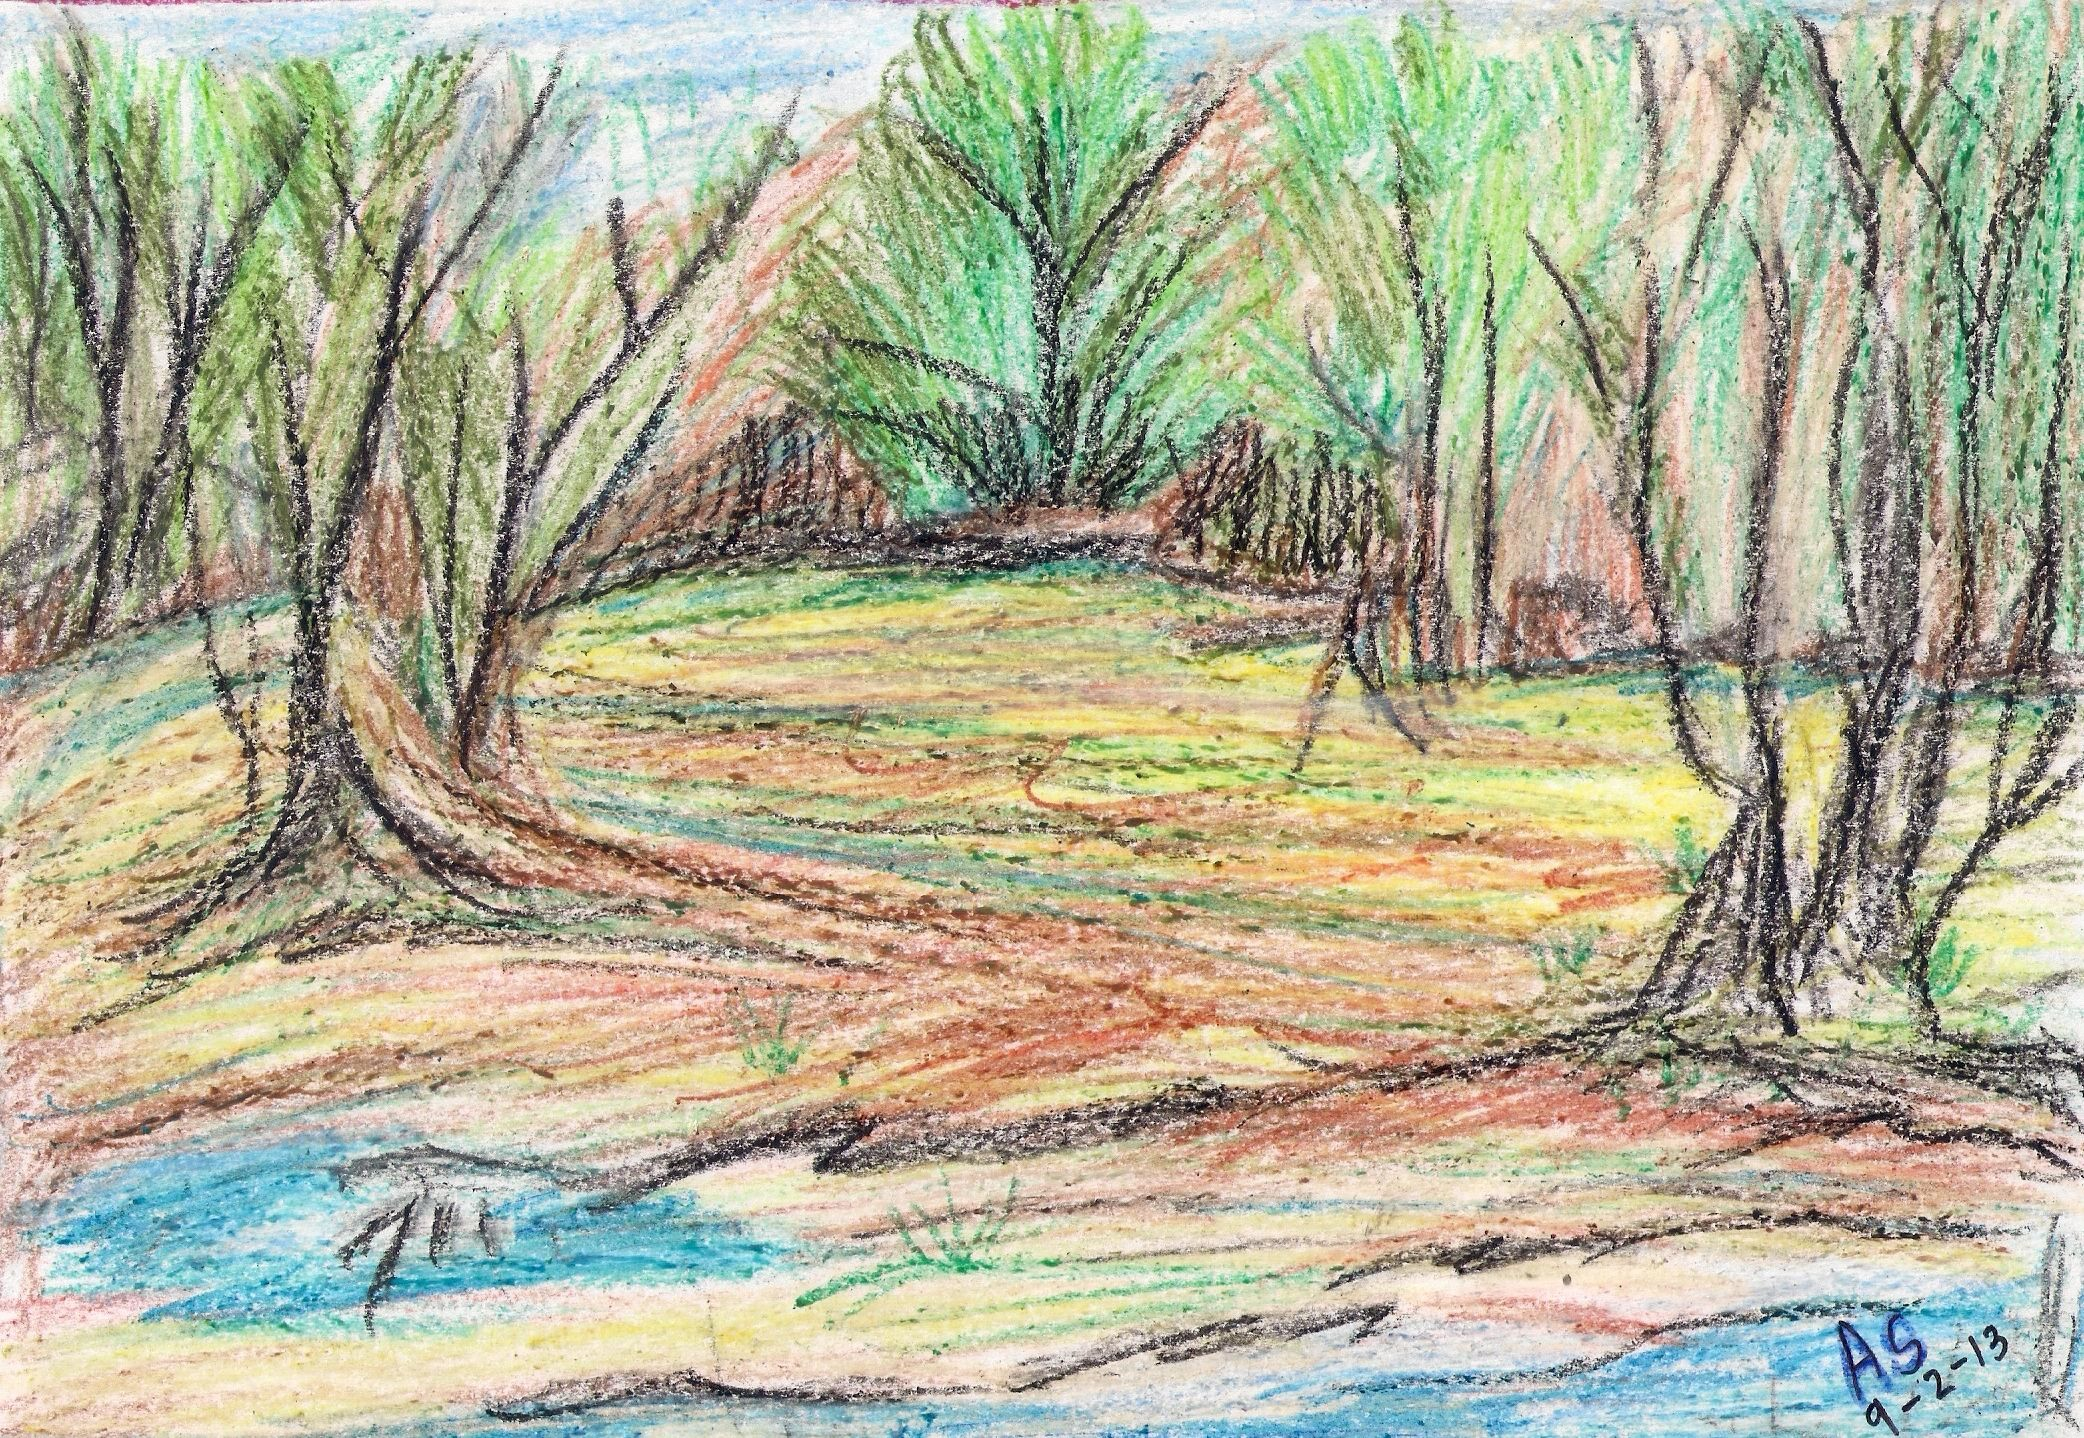 A scenery in wax crayons drawing painting crayons for Wax landscape